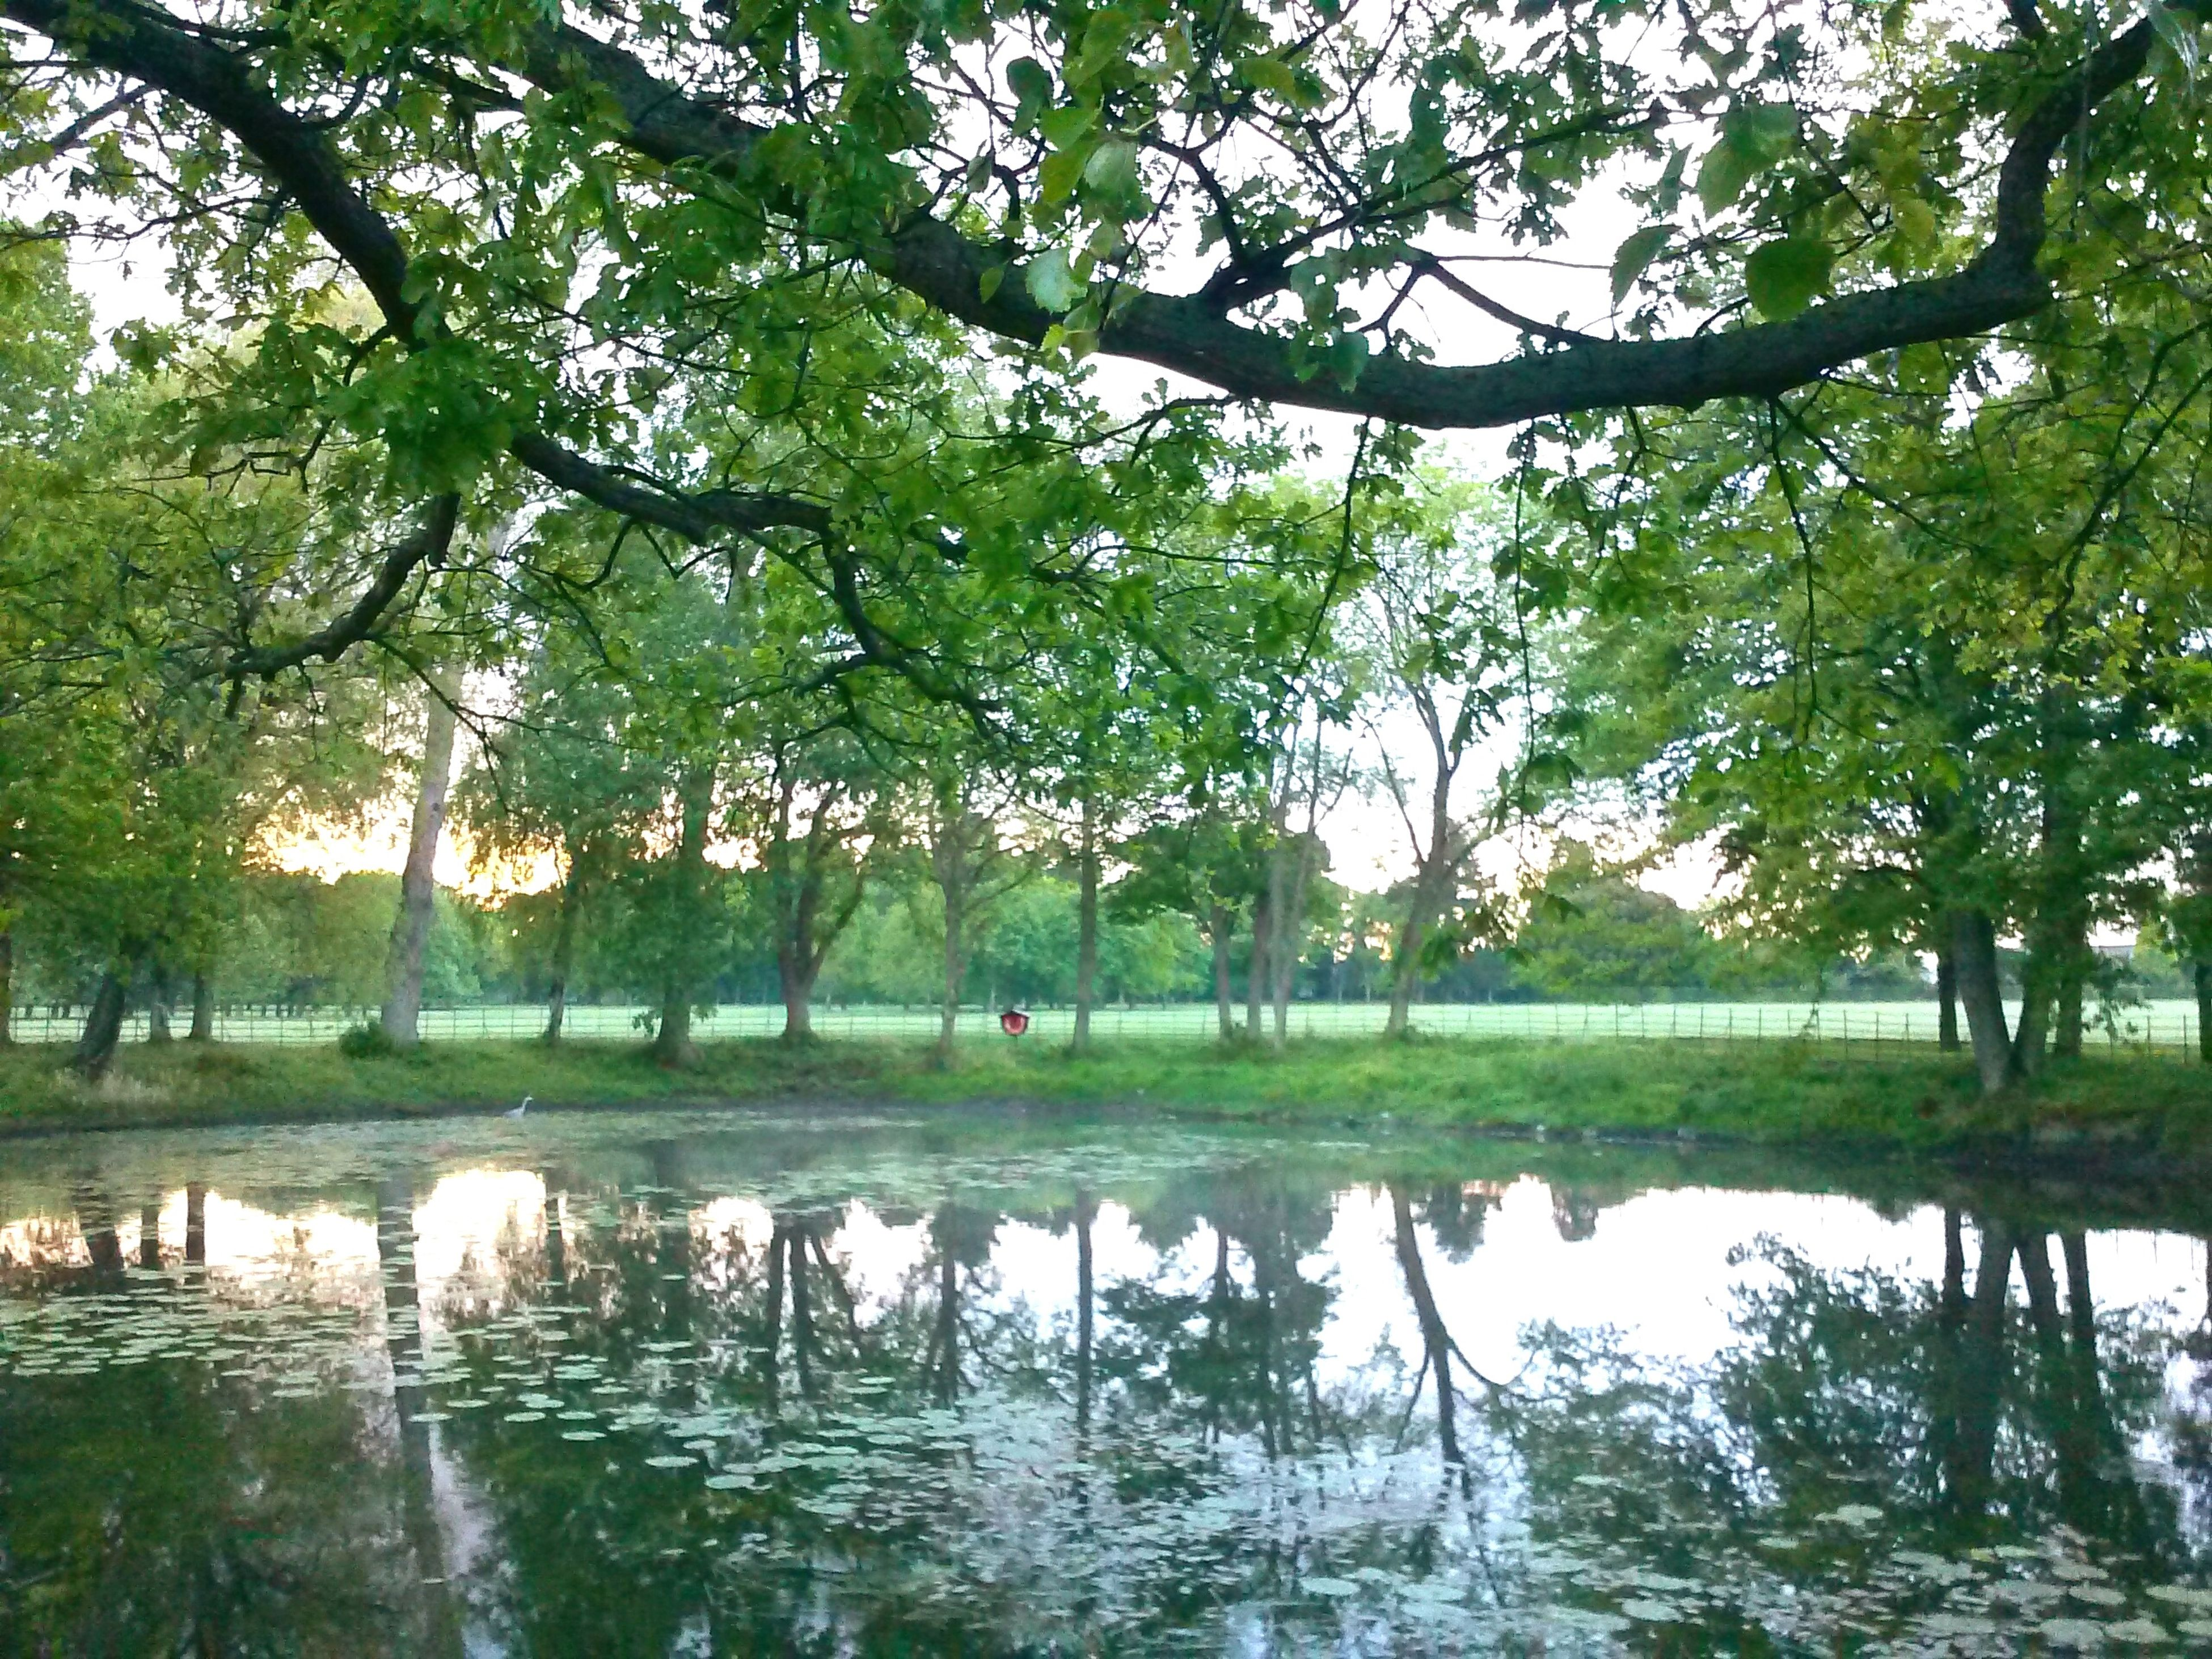 tree, nature, reflection, water, beauty in nature, lake, tranquility, tranquil scene, outdoors, scenics, branch, day, green color, growth, grass, no people, swimming, scenery, sky